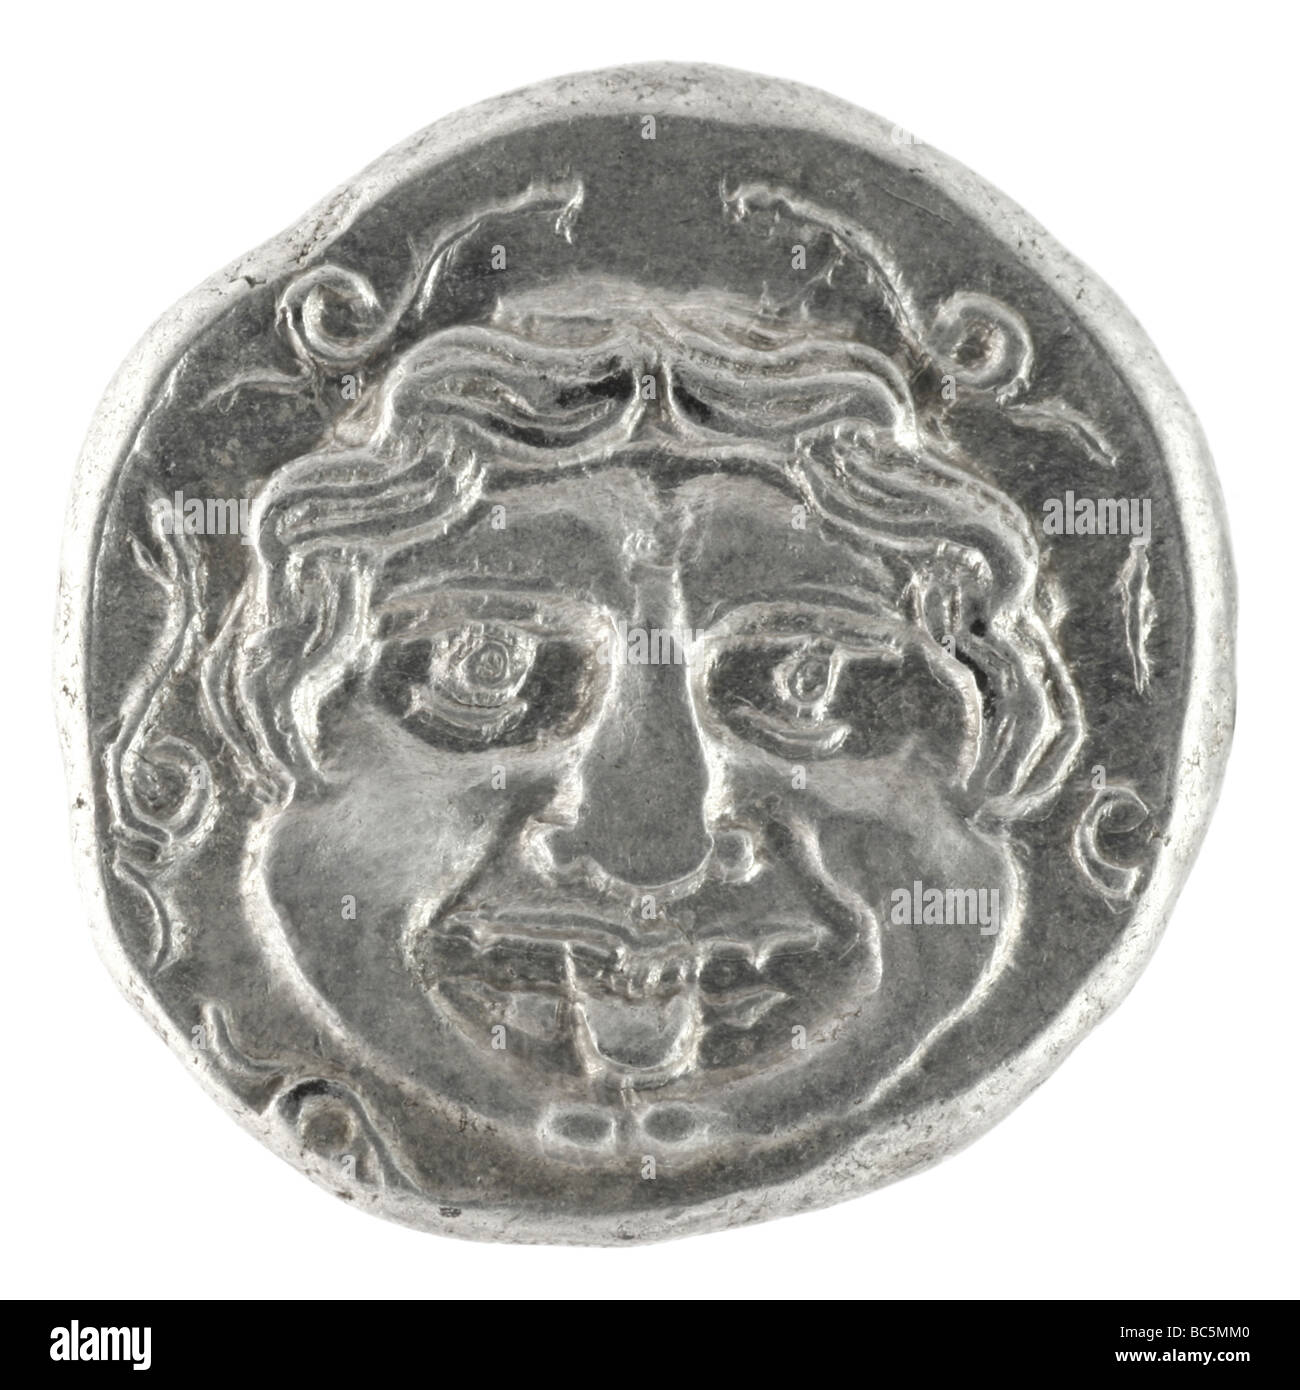 Medusa on ancient Greek half drachm from 300 BC - Stock Image